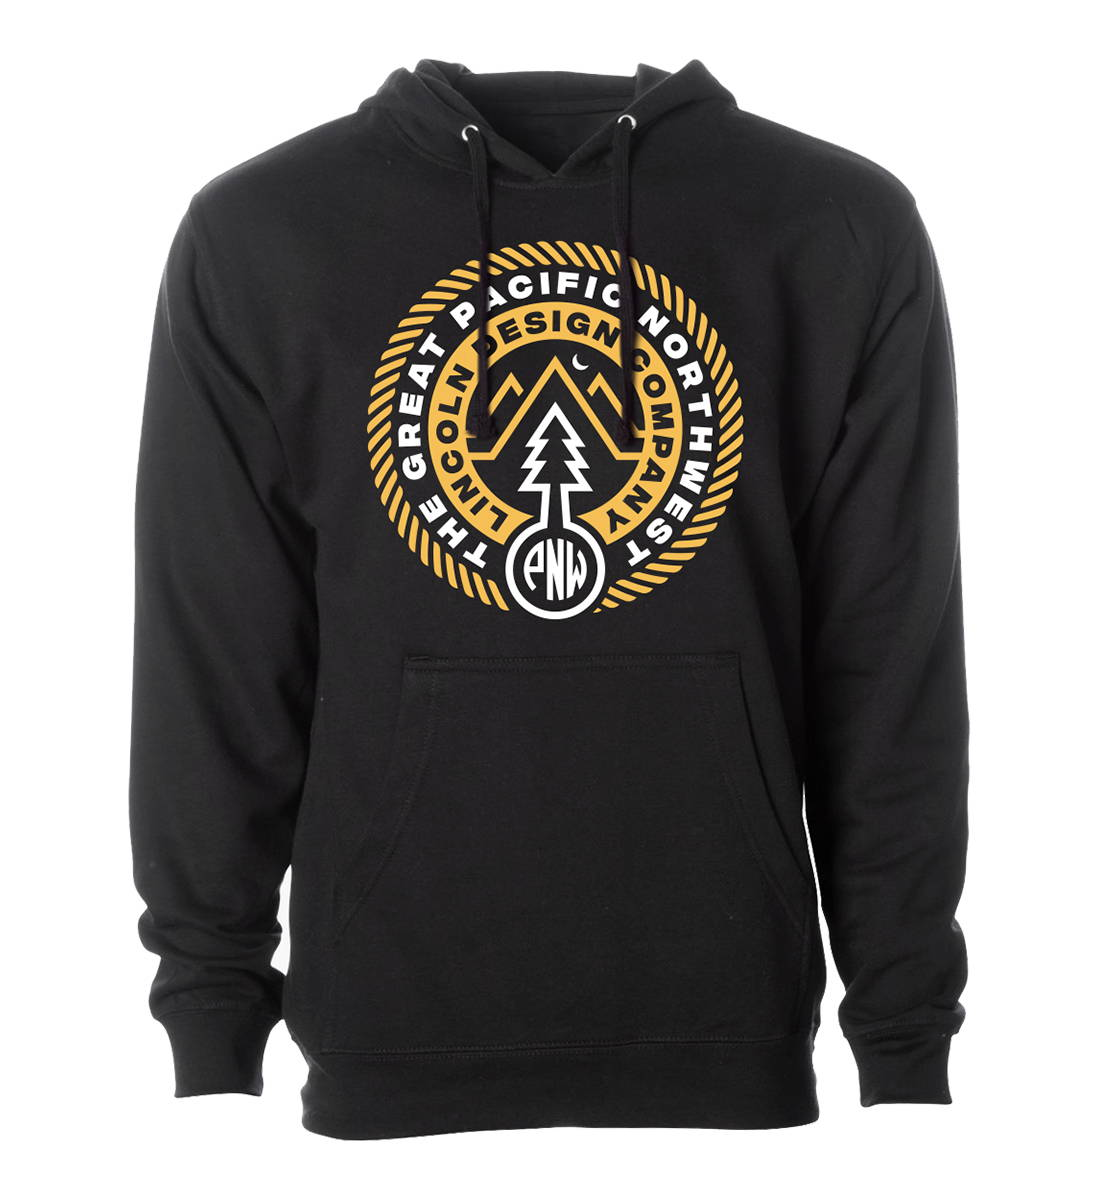 Wander Hoodie - The Great PNW X Lincoln Design Co.